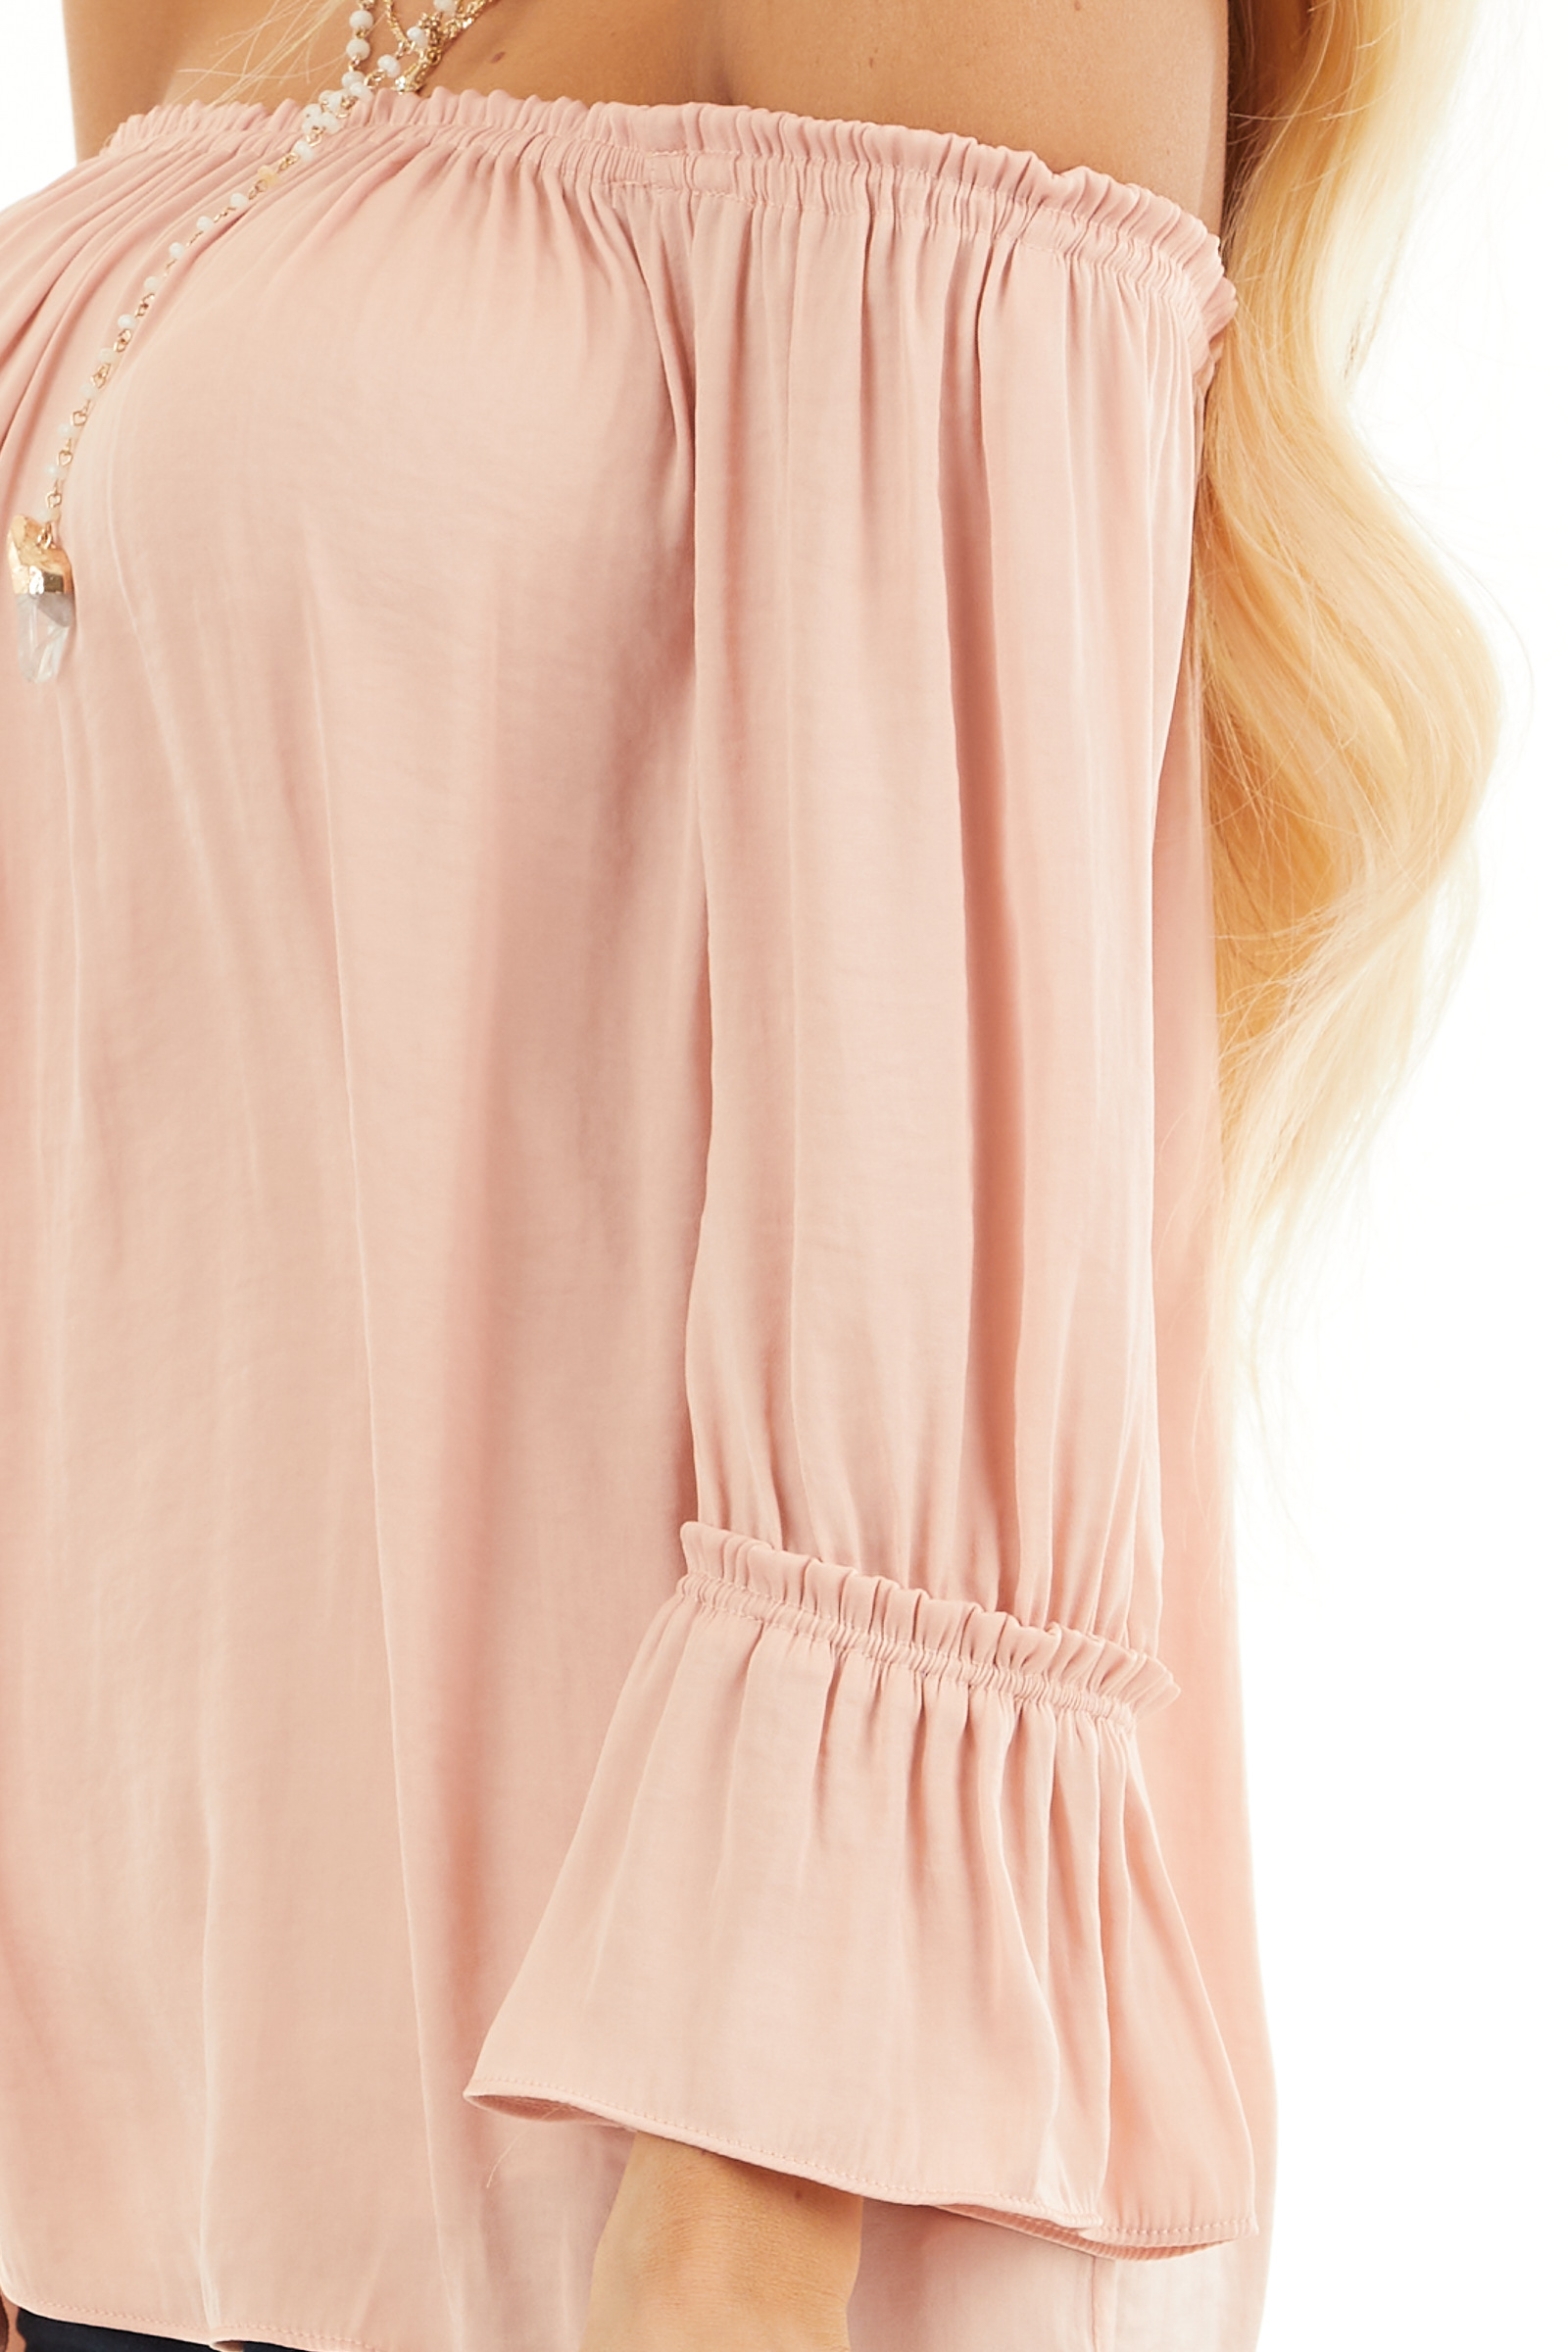 Blush Silky Off the Shoulder Blouse with 3/4 Bell Sleeves detail